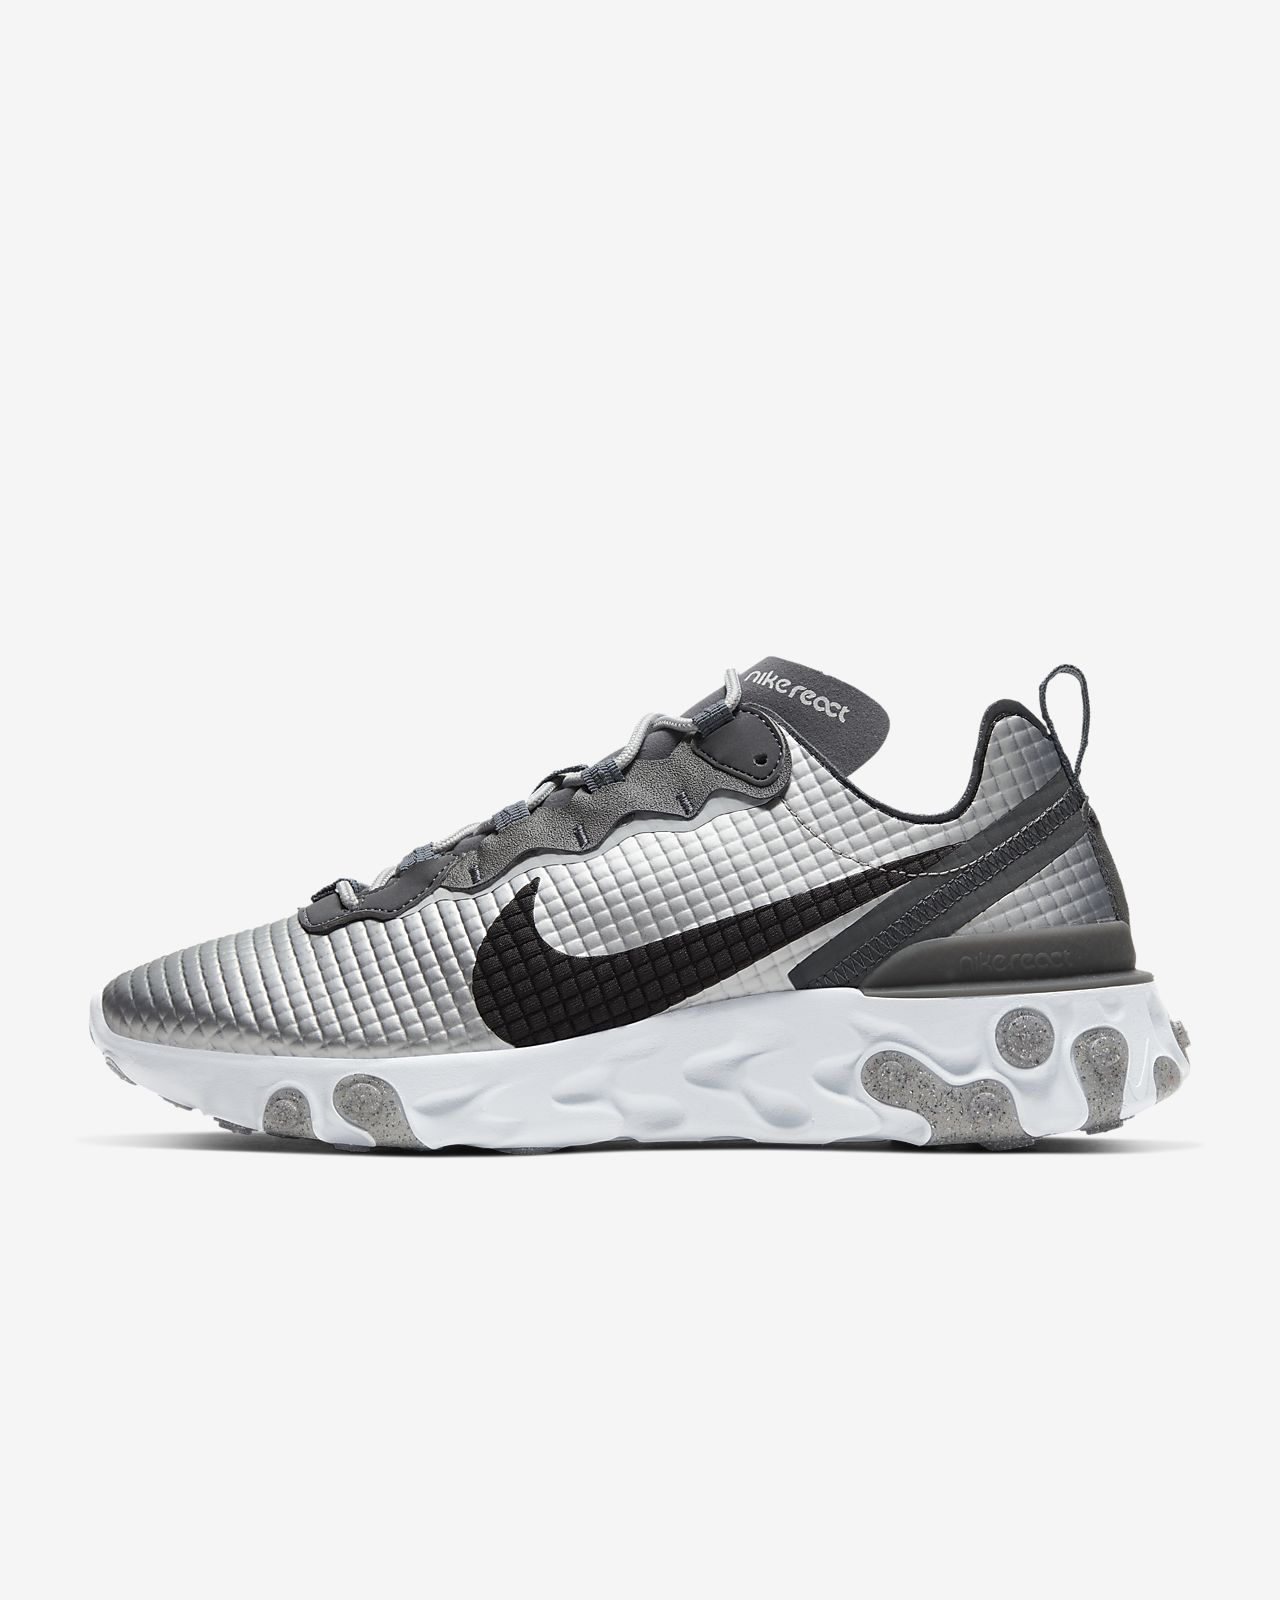 Nike React Element 55 Premium Men's Shoe